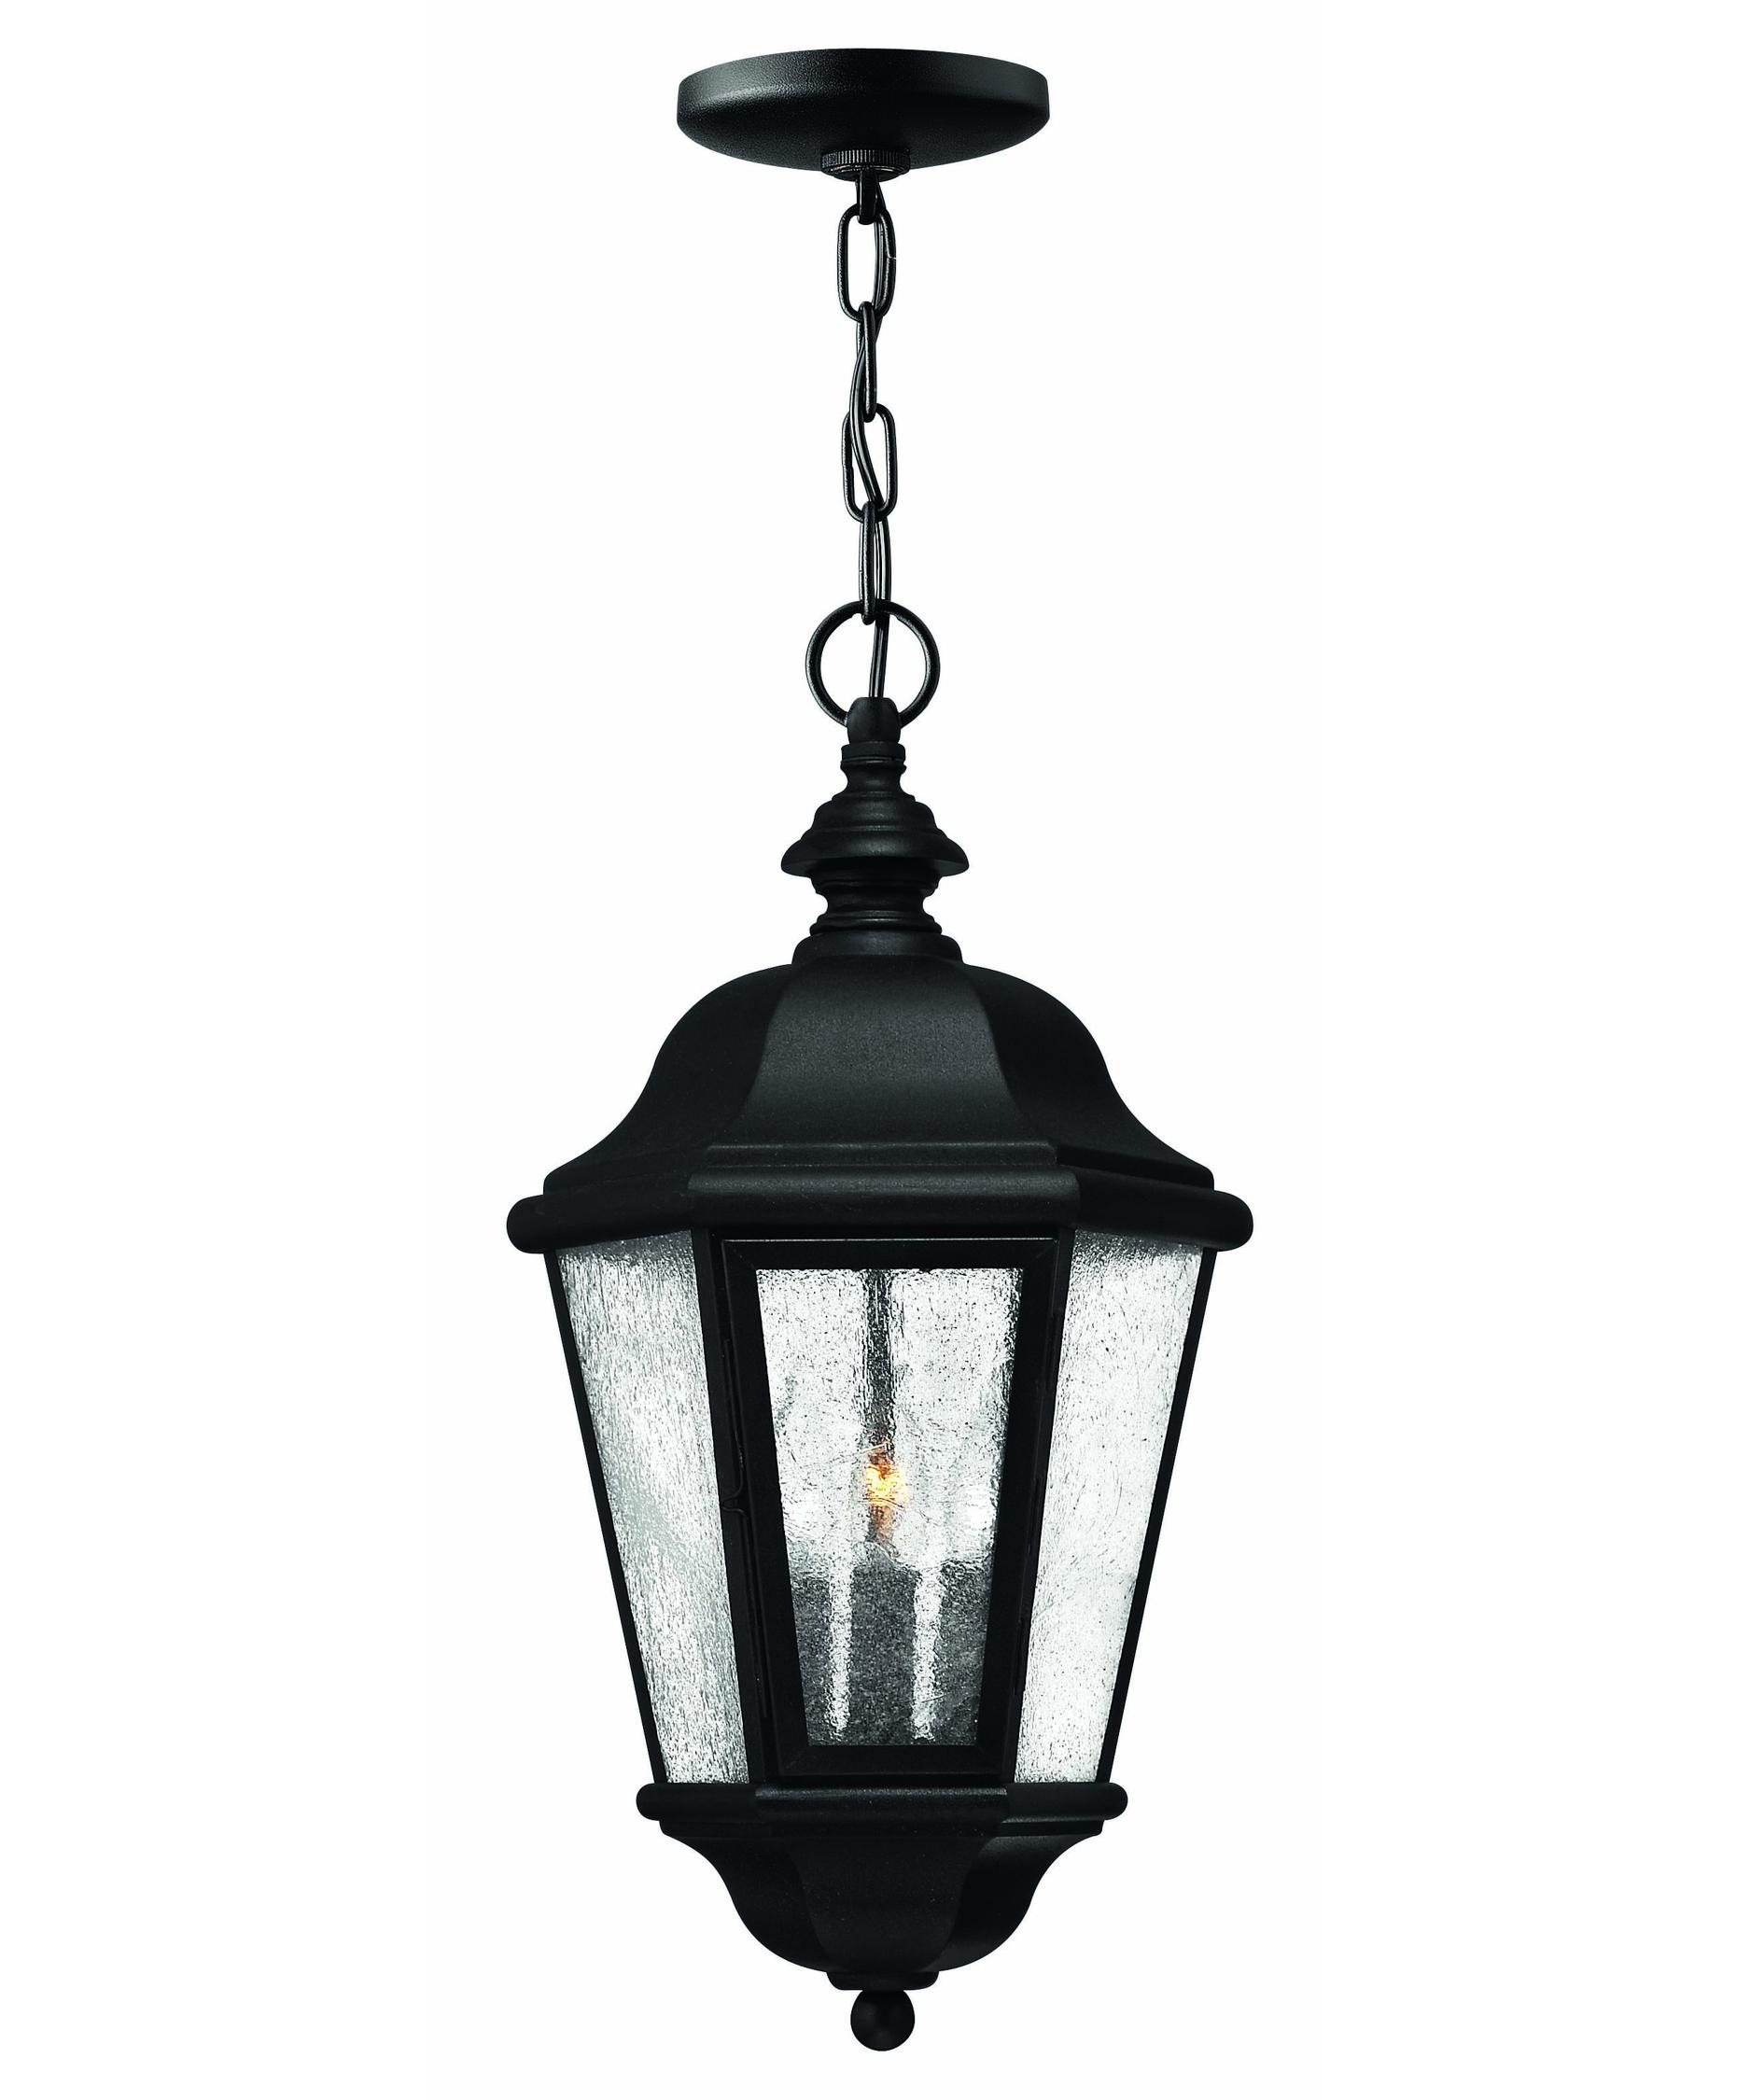 Hinkley Lighting 1672 Edgewater 10 Inch Wide 3 Light Outdoor Hanging Inside Outdoor Hanging Lanterns (View 3 of 15)